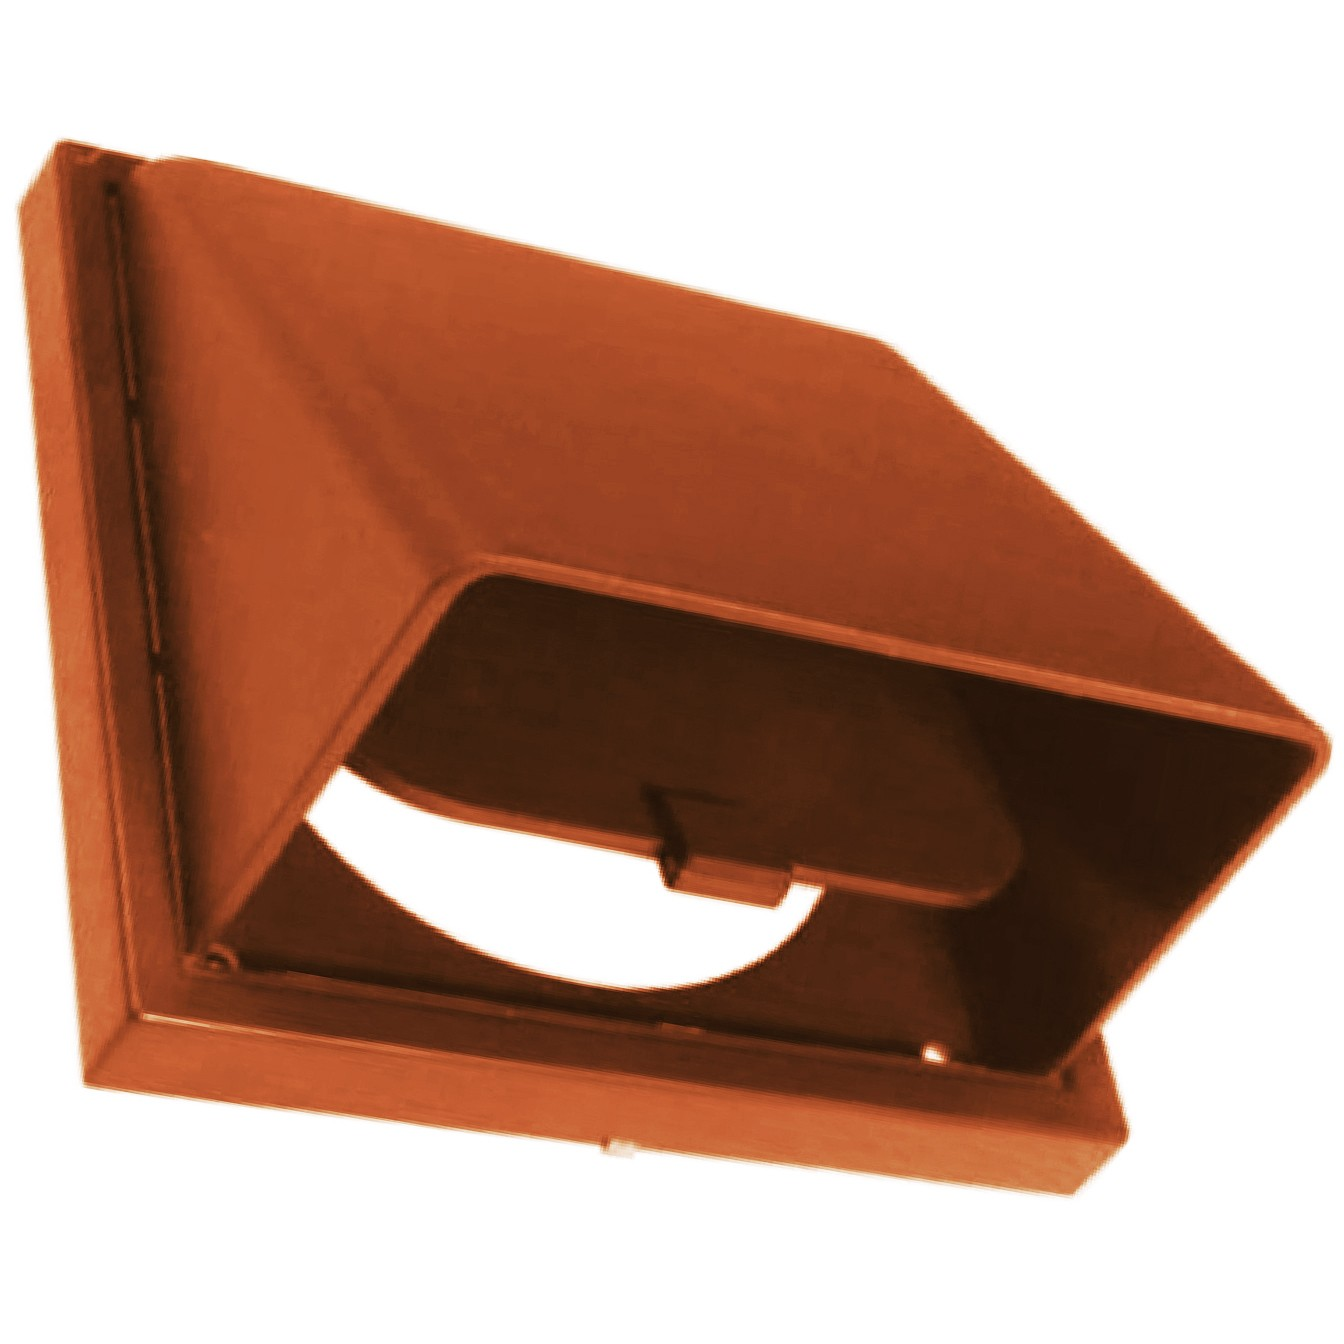 Manrose Round Ducting Pipe Wall Hood Cowled Outlet - Terracotta, 100mm